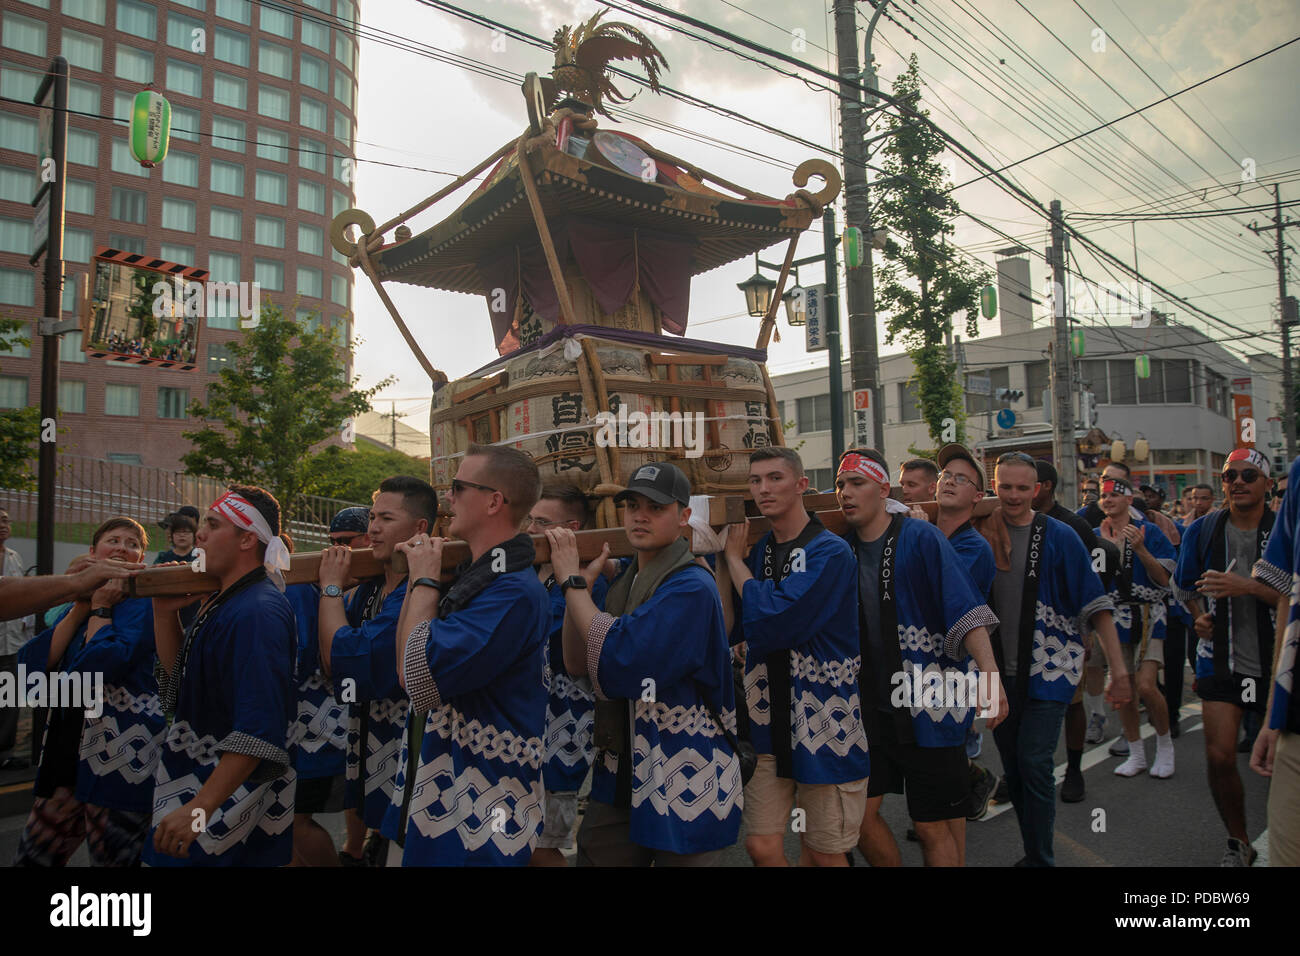 Members from Yokota Air Base carry the 374th Airlift Wing's official mikoshi during the 68th Annual Fussa Tanabata Festival at Fussa City, Japan, Aug. 3, 2018. More than 70 volunteers from Yokota carried the mikoshi during this year's festival. Yokota Airmen have attended the festival since 1958 and have actively participated in carrying a mikoshi since 1975. (U.S. Air Force photo by Yasuo Osakabe) - Stock Image